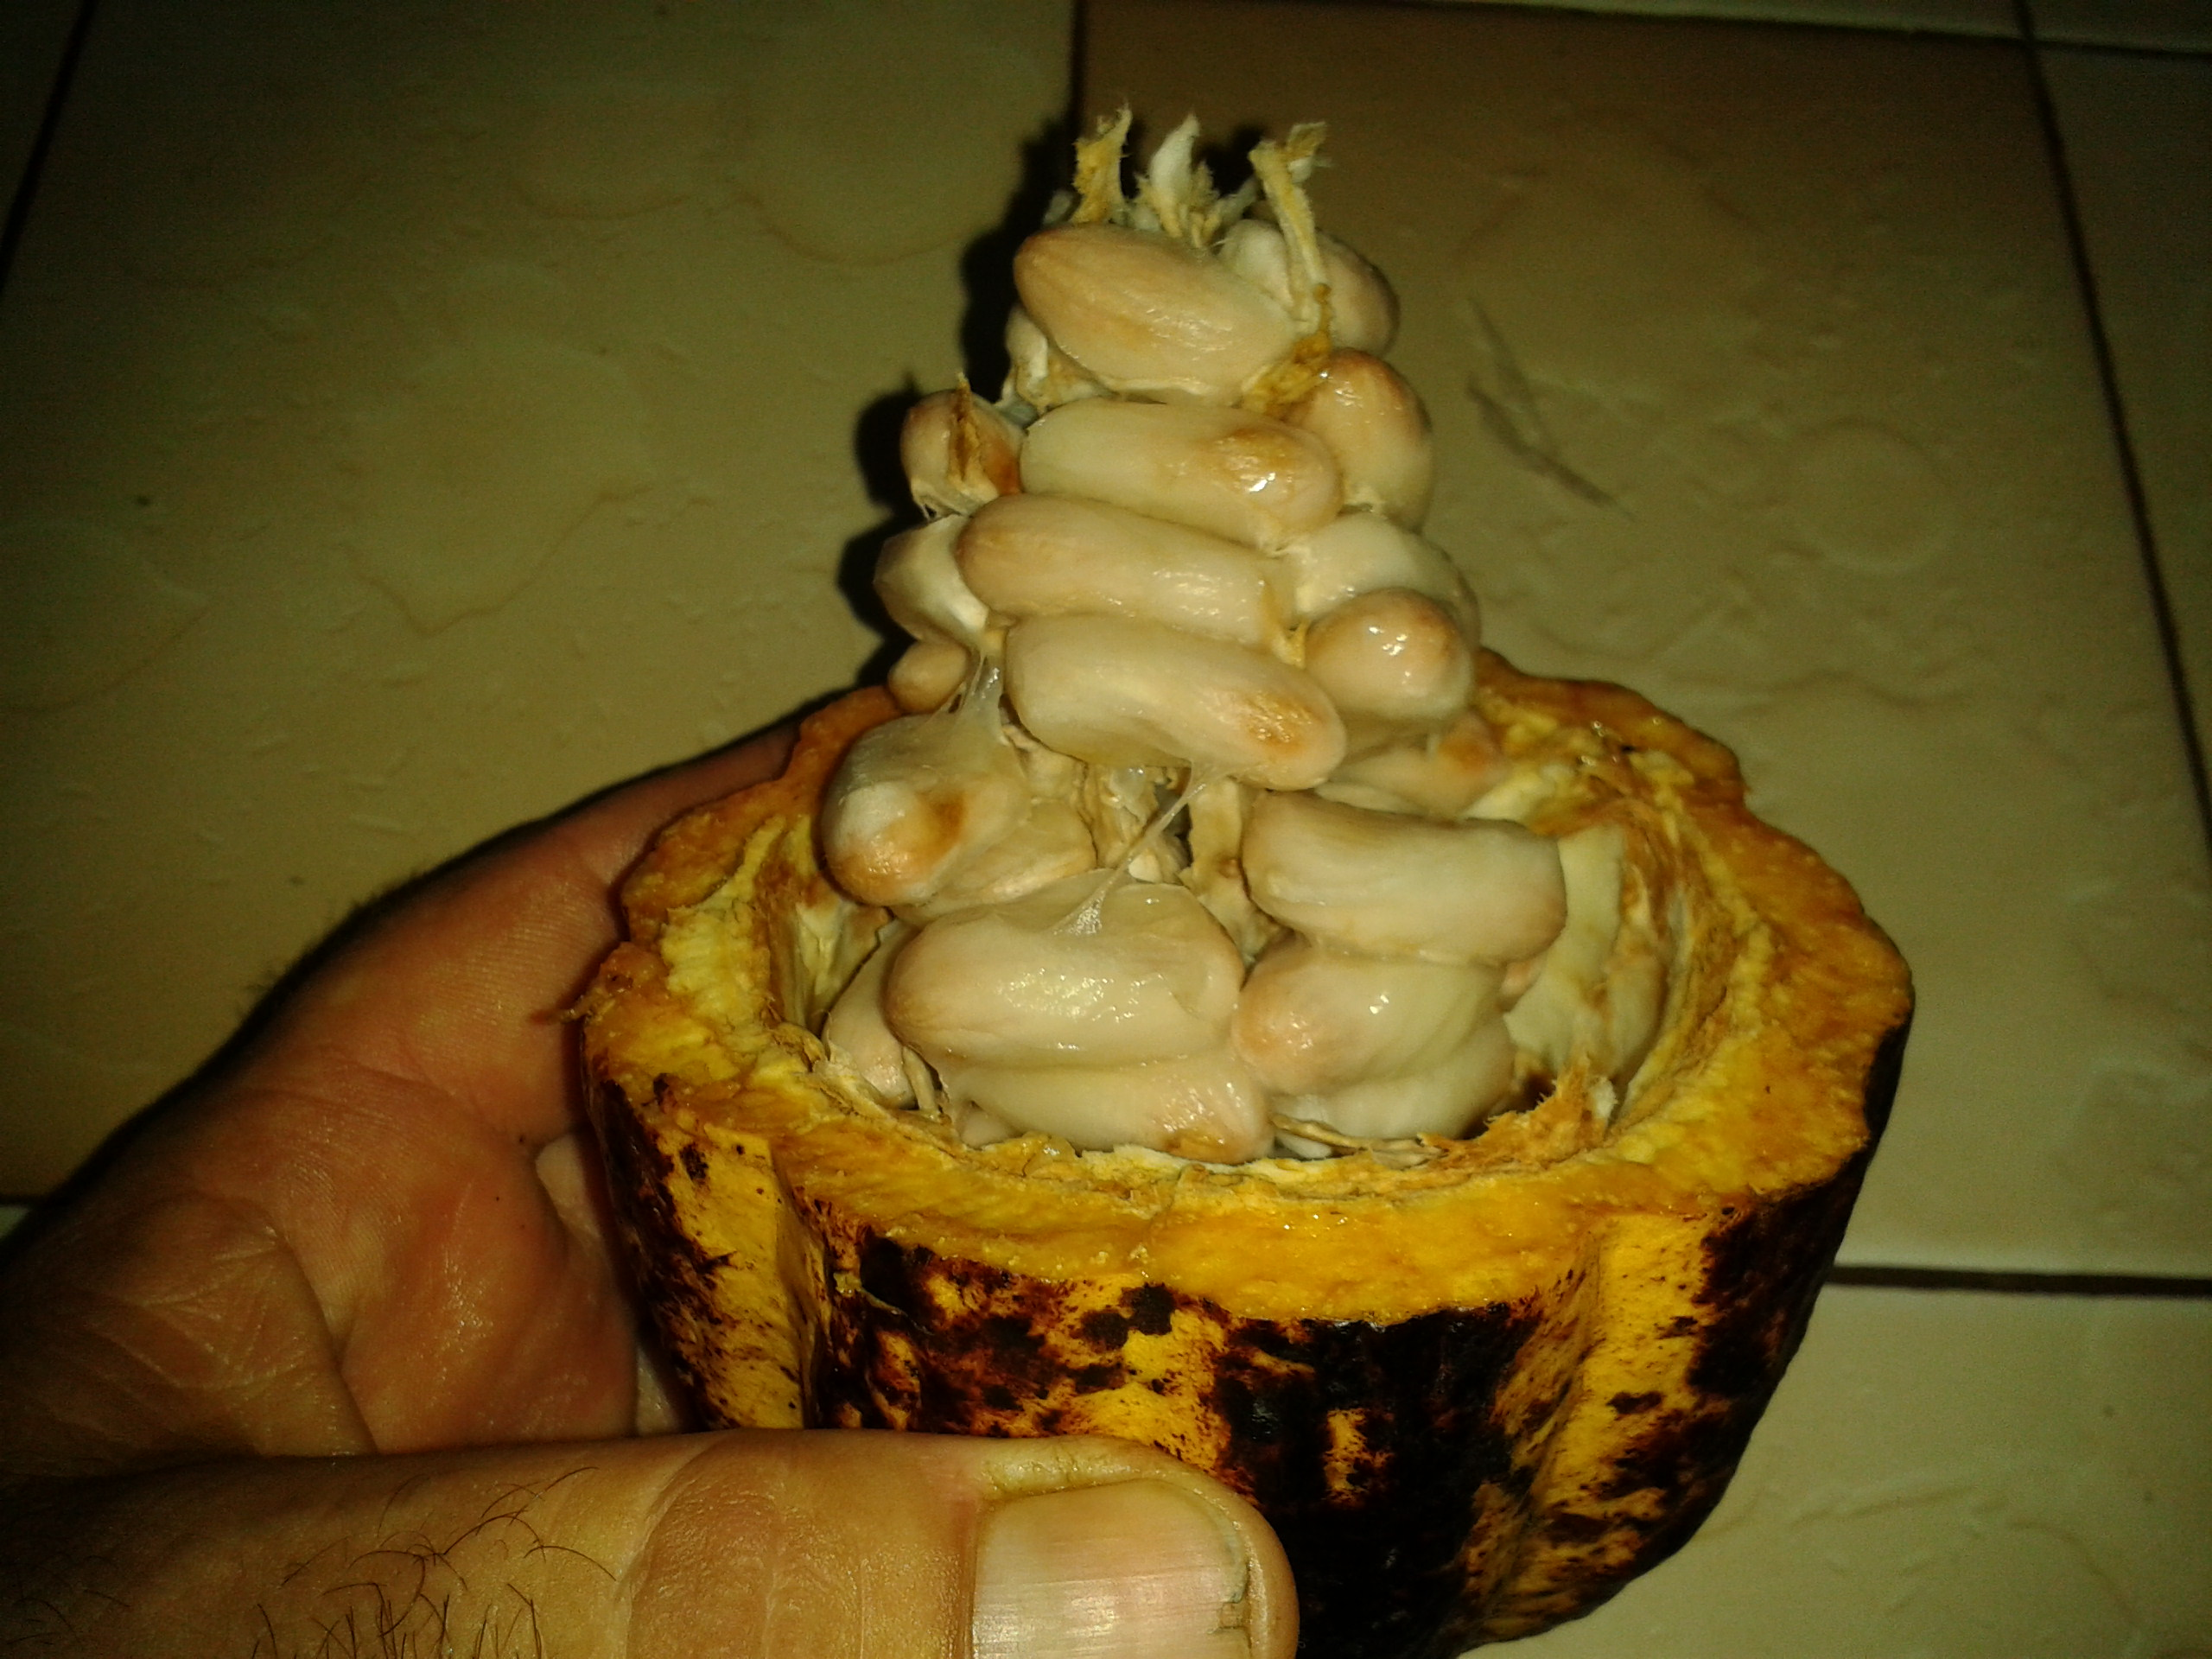 Extraction de la fève de cacao